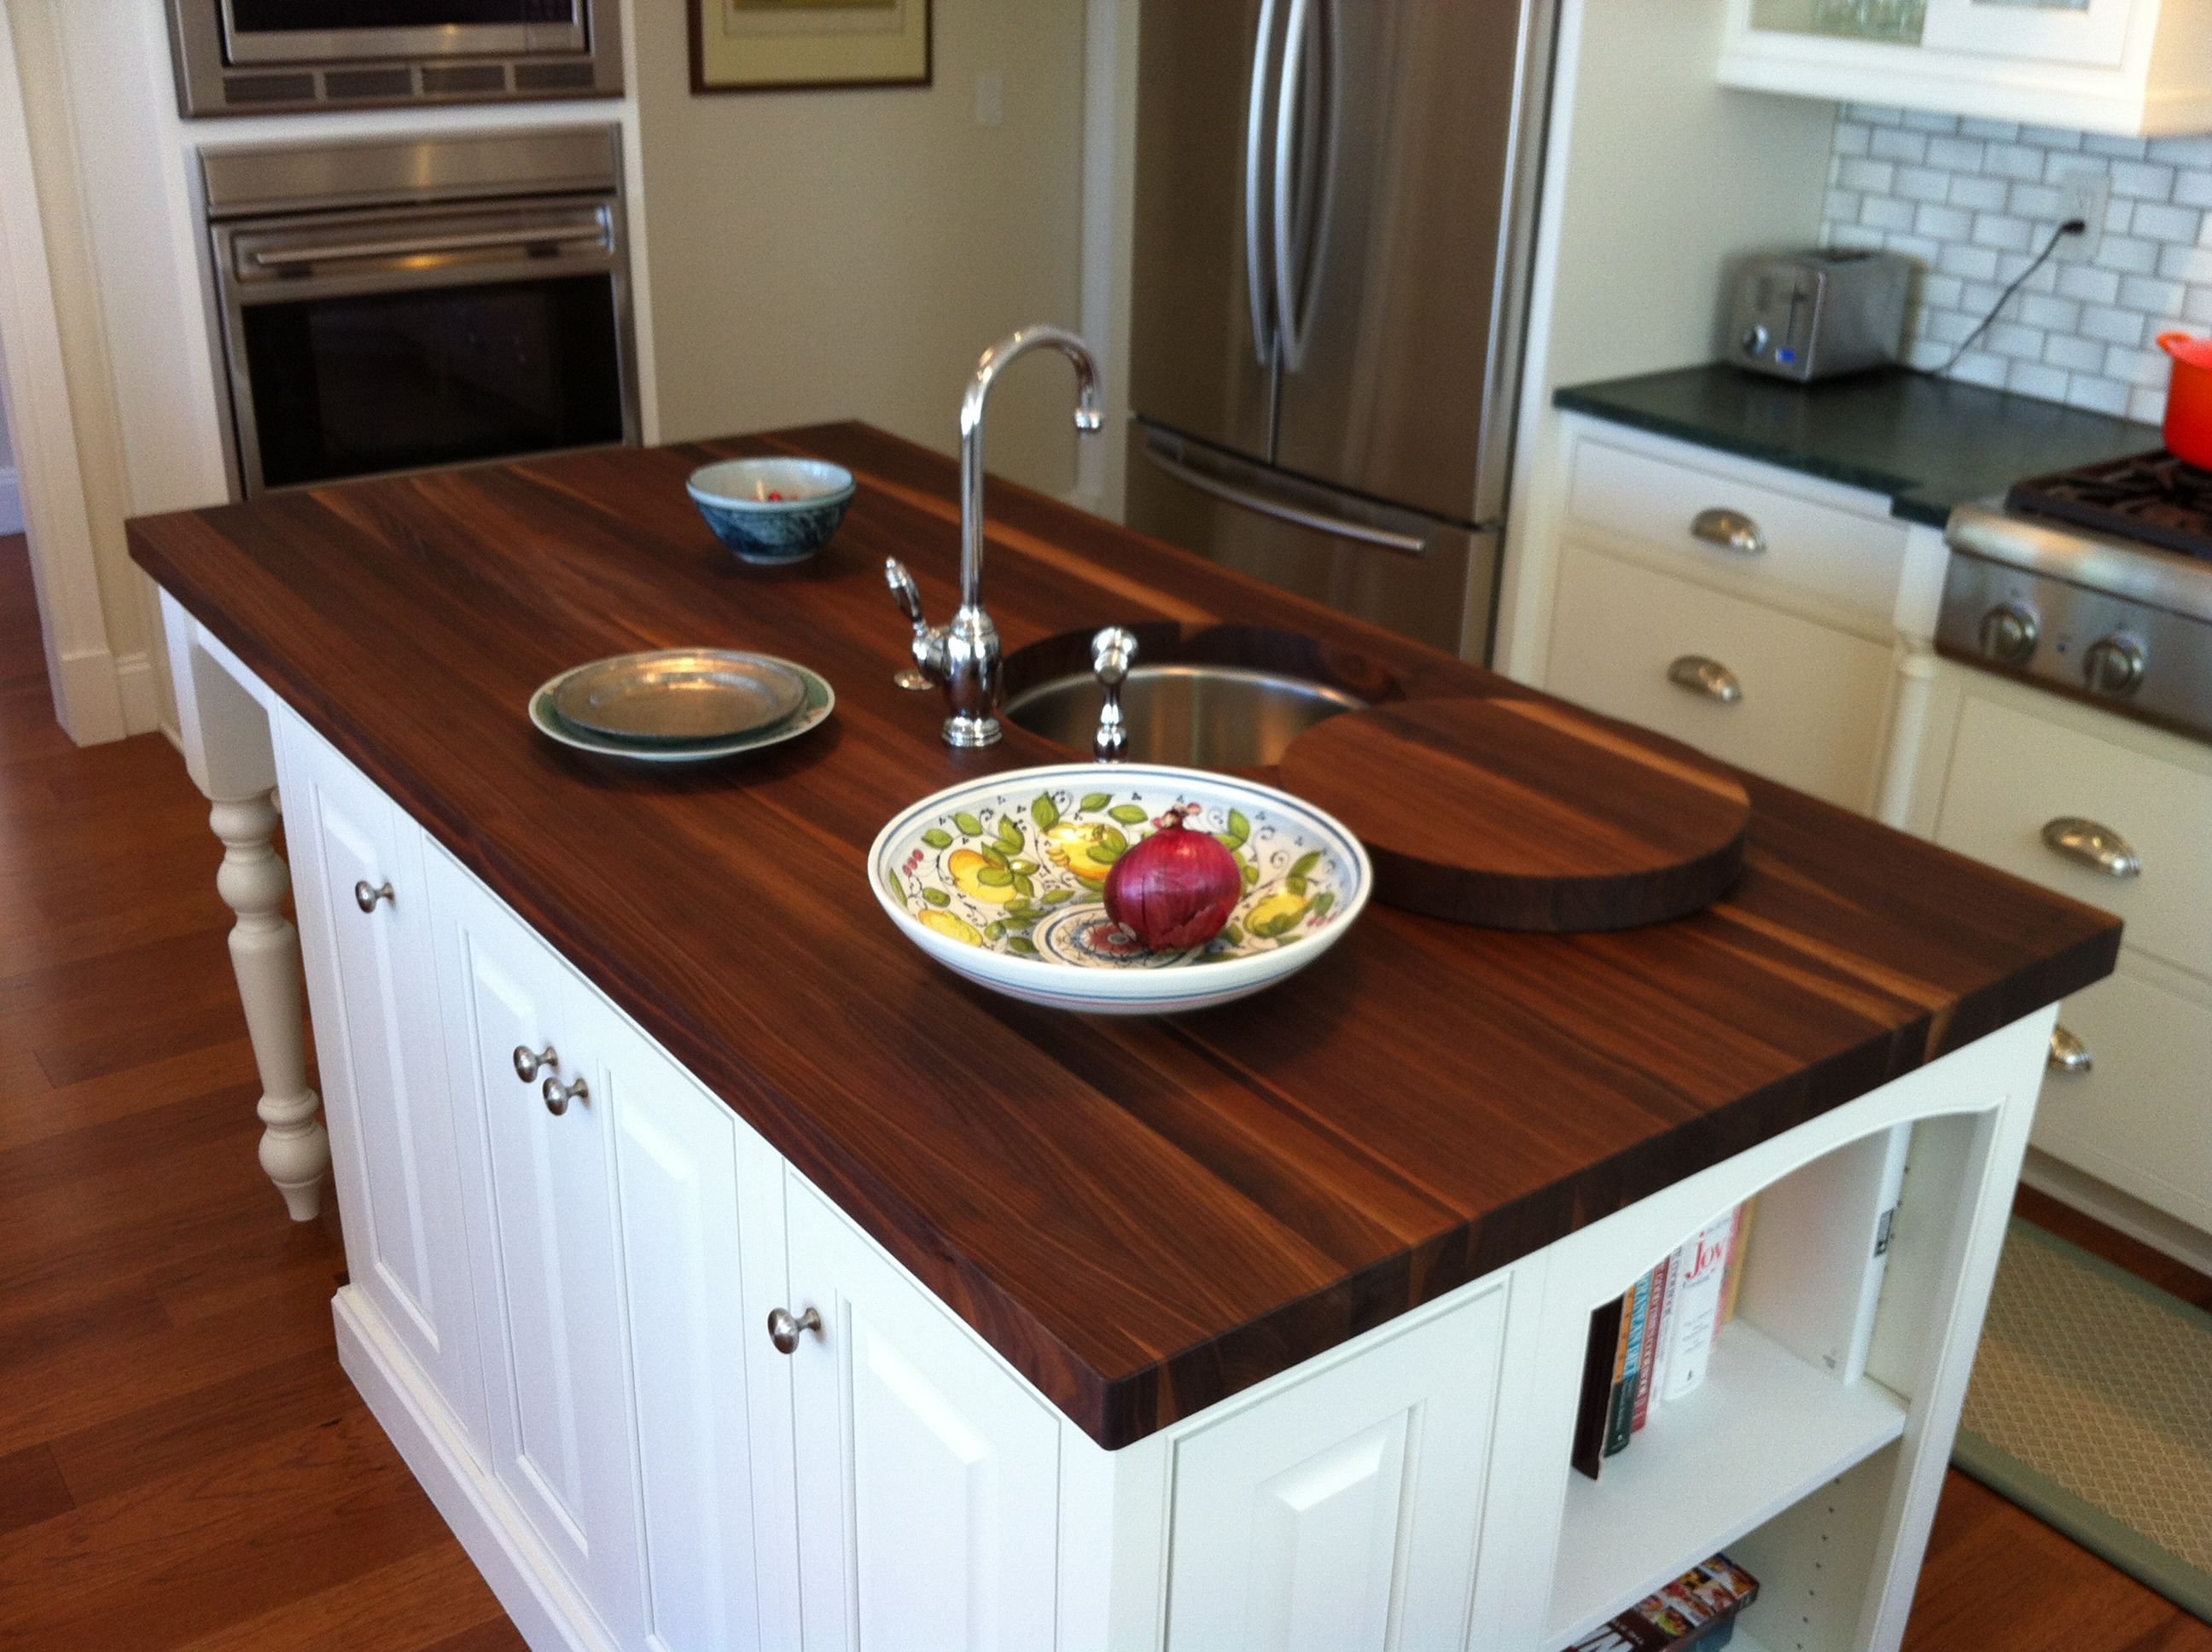 Cool Countertops Amusing Charming And Classy Wooden Kitchen Countertops  Soapstone . Design Ideas